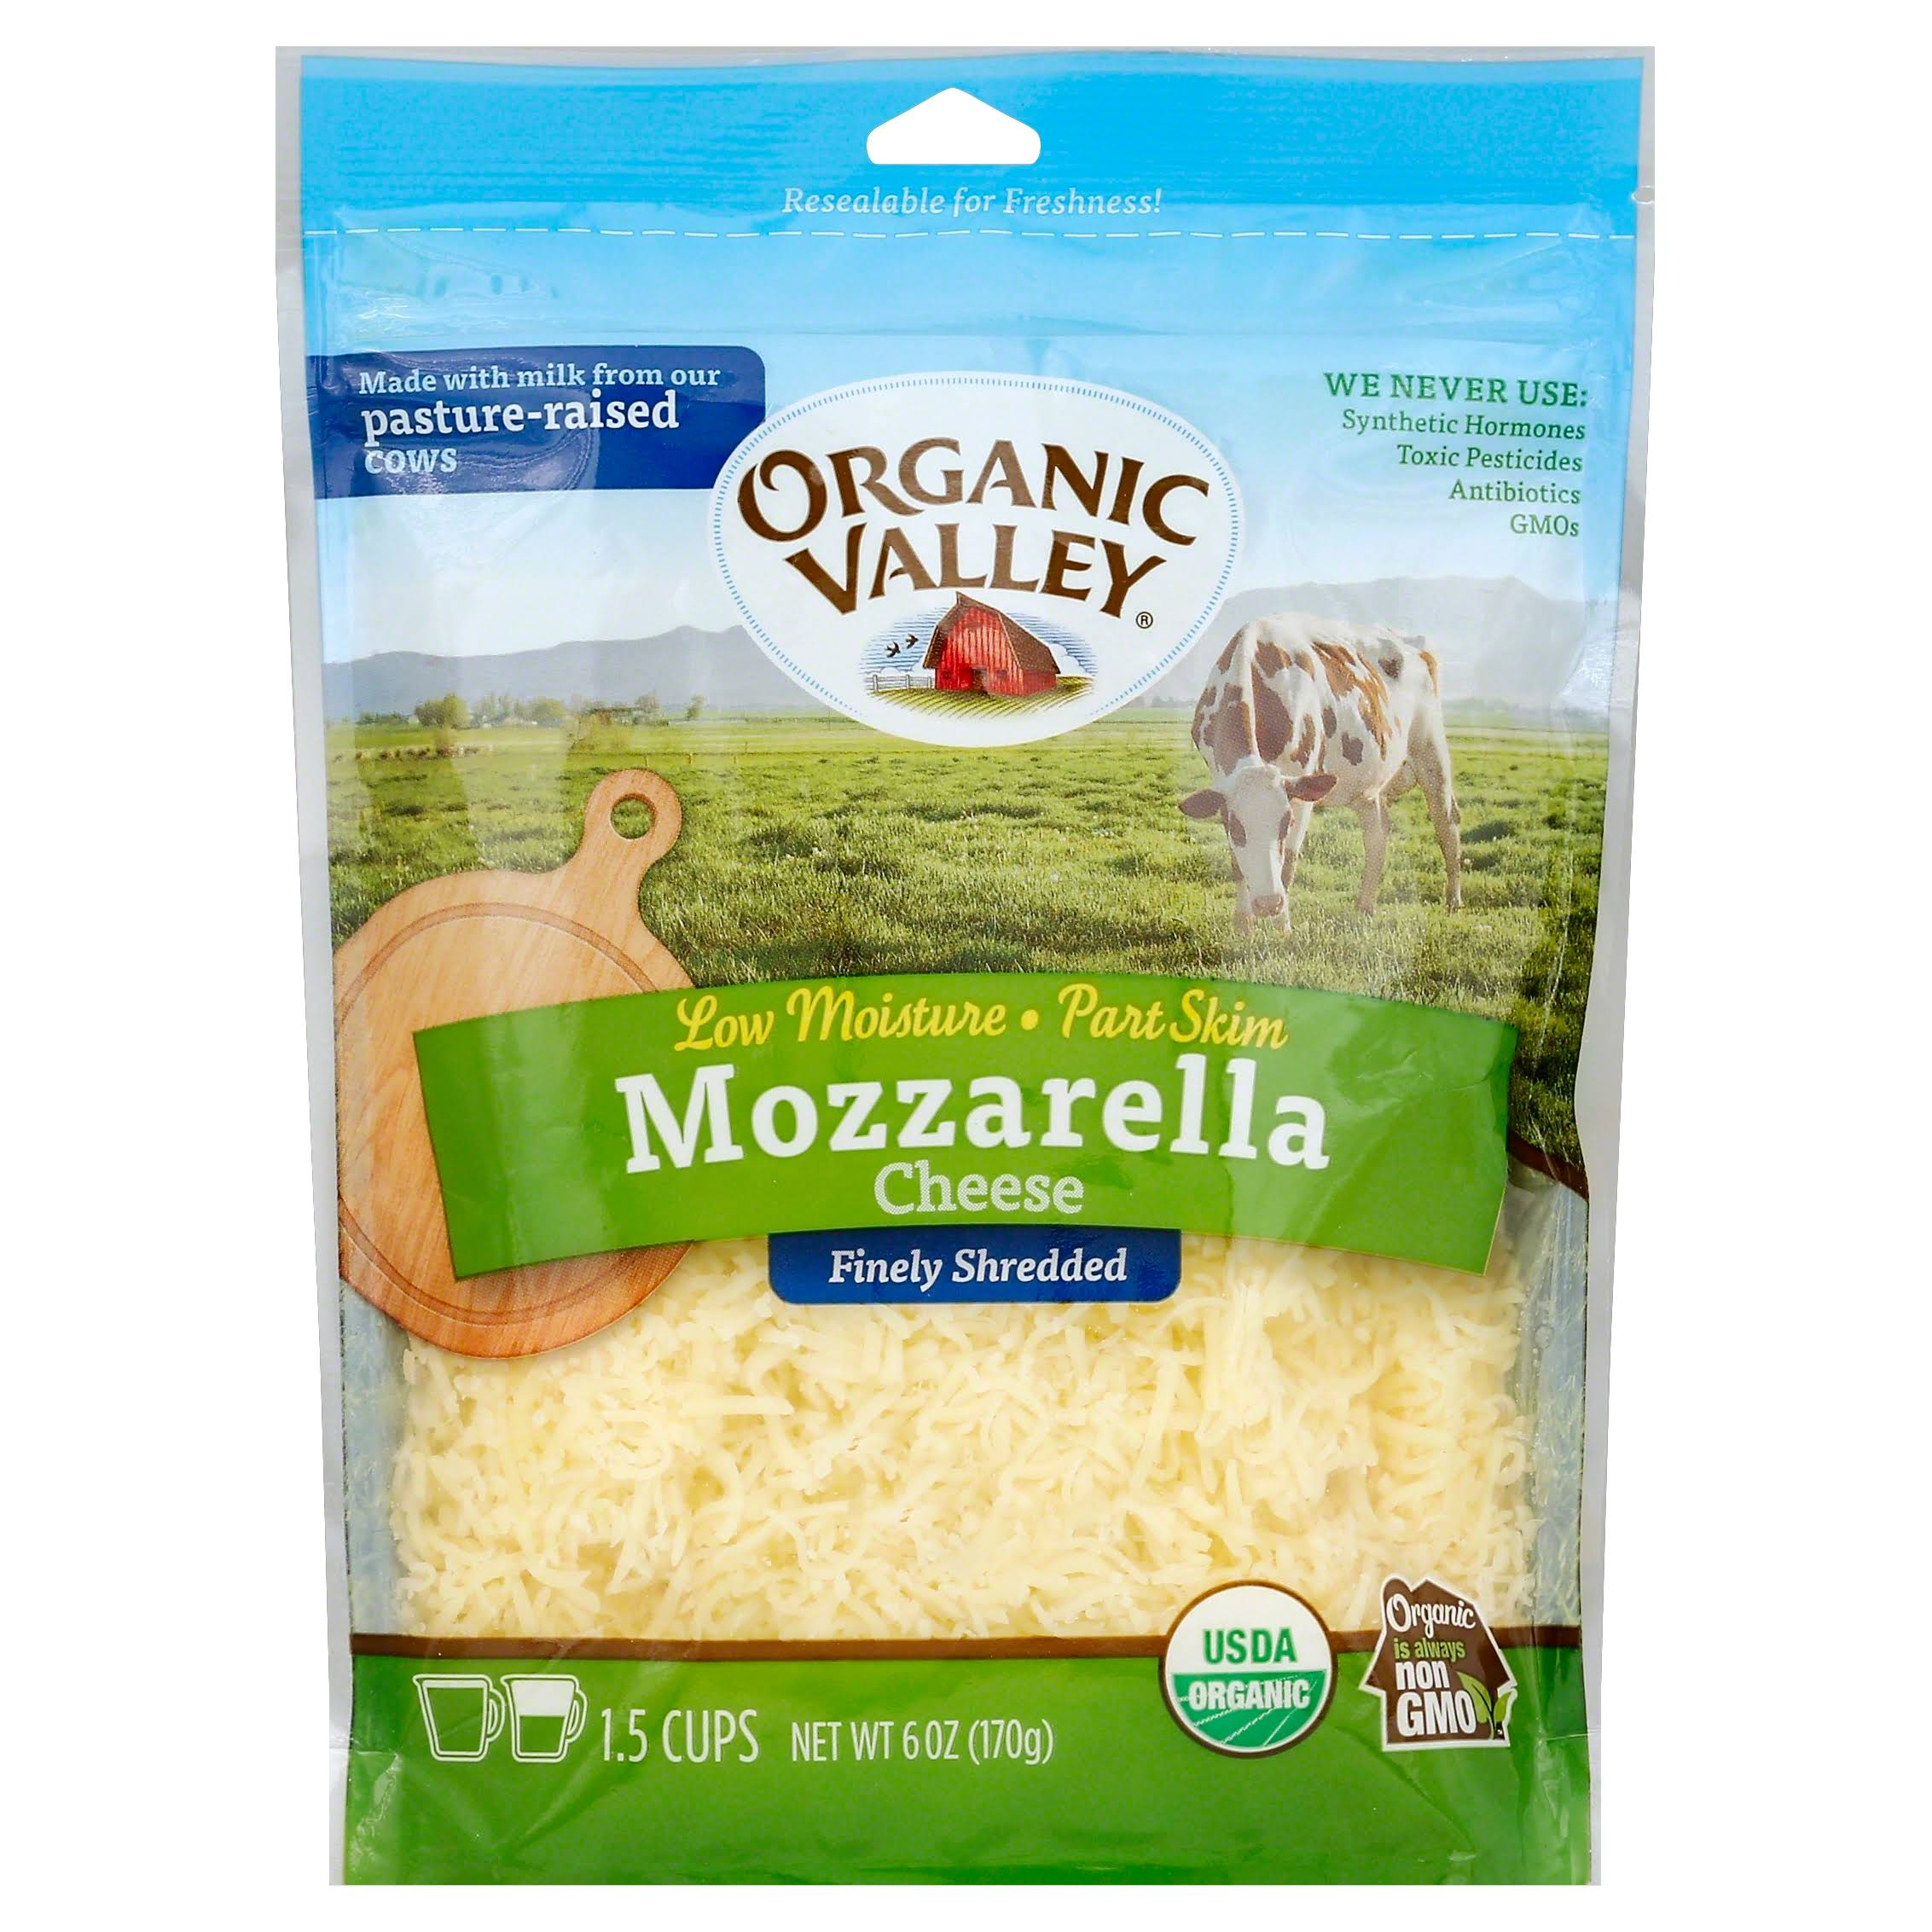 Organic Valley Cheese, Finely Shredded, Mozzarella, Low Moisture, Part Skim - 6 oz